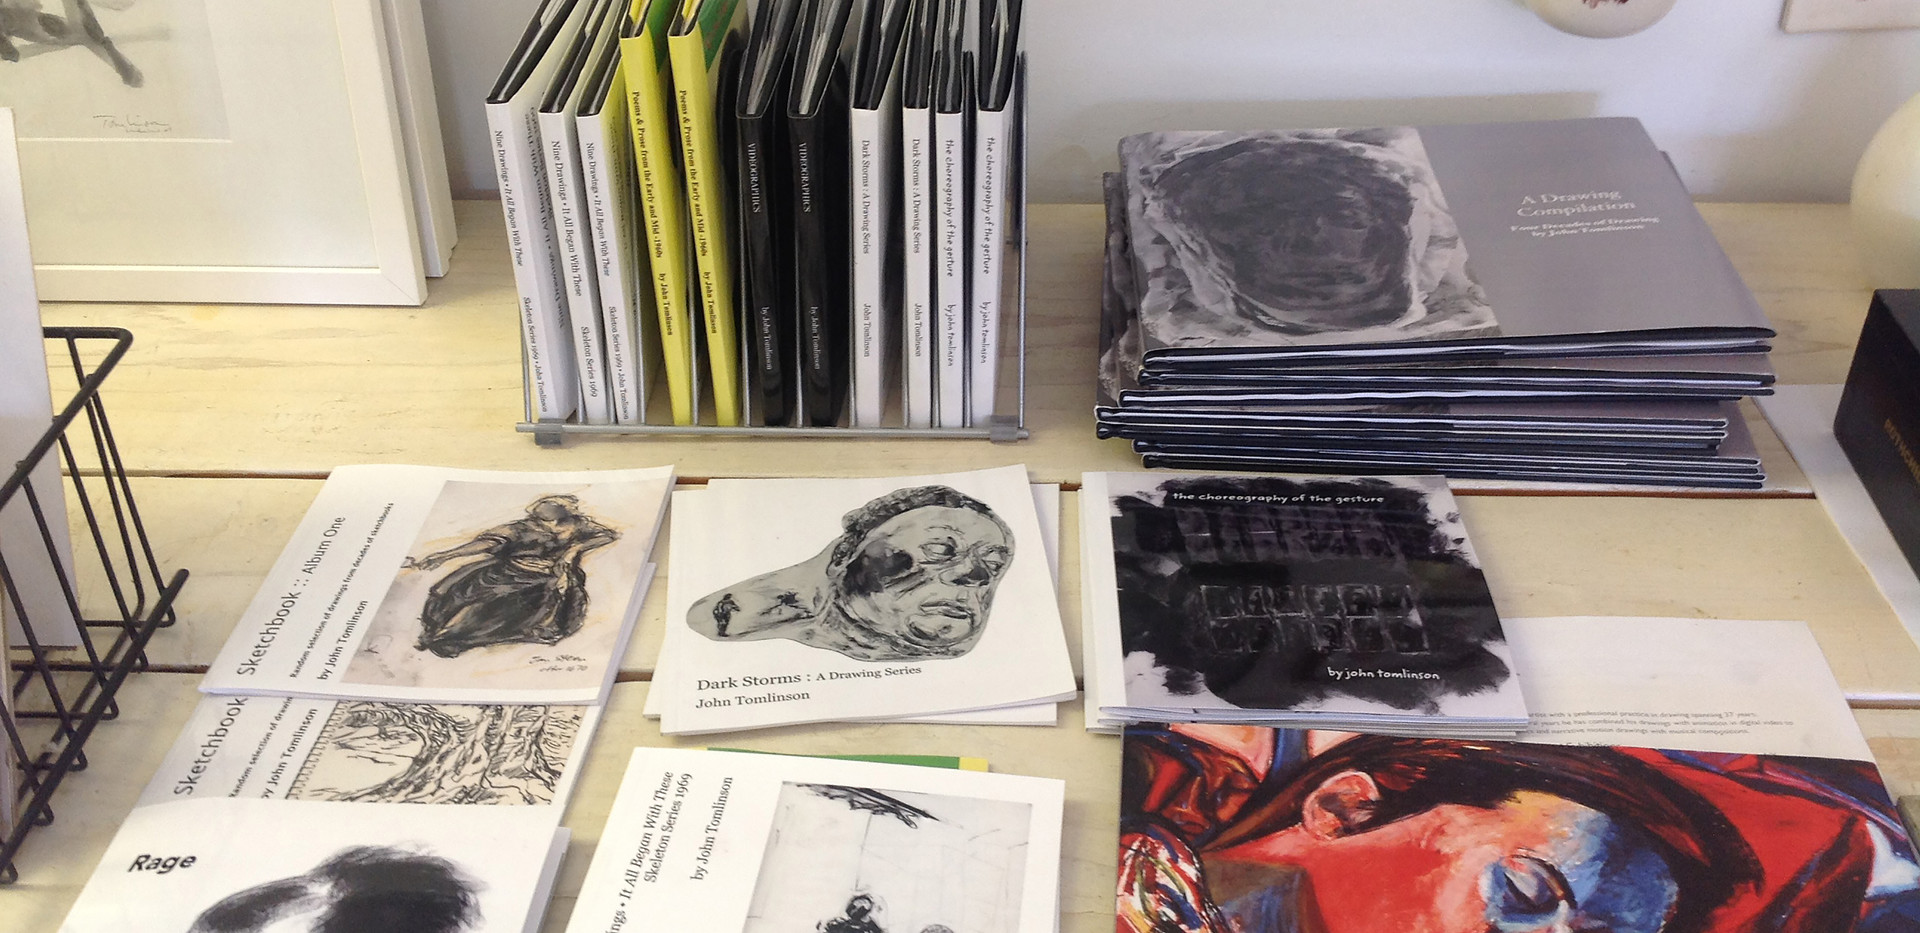 Showing space bench w. artist's books